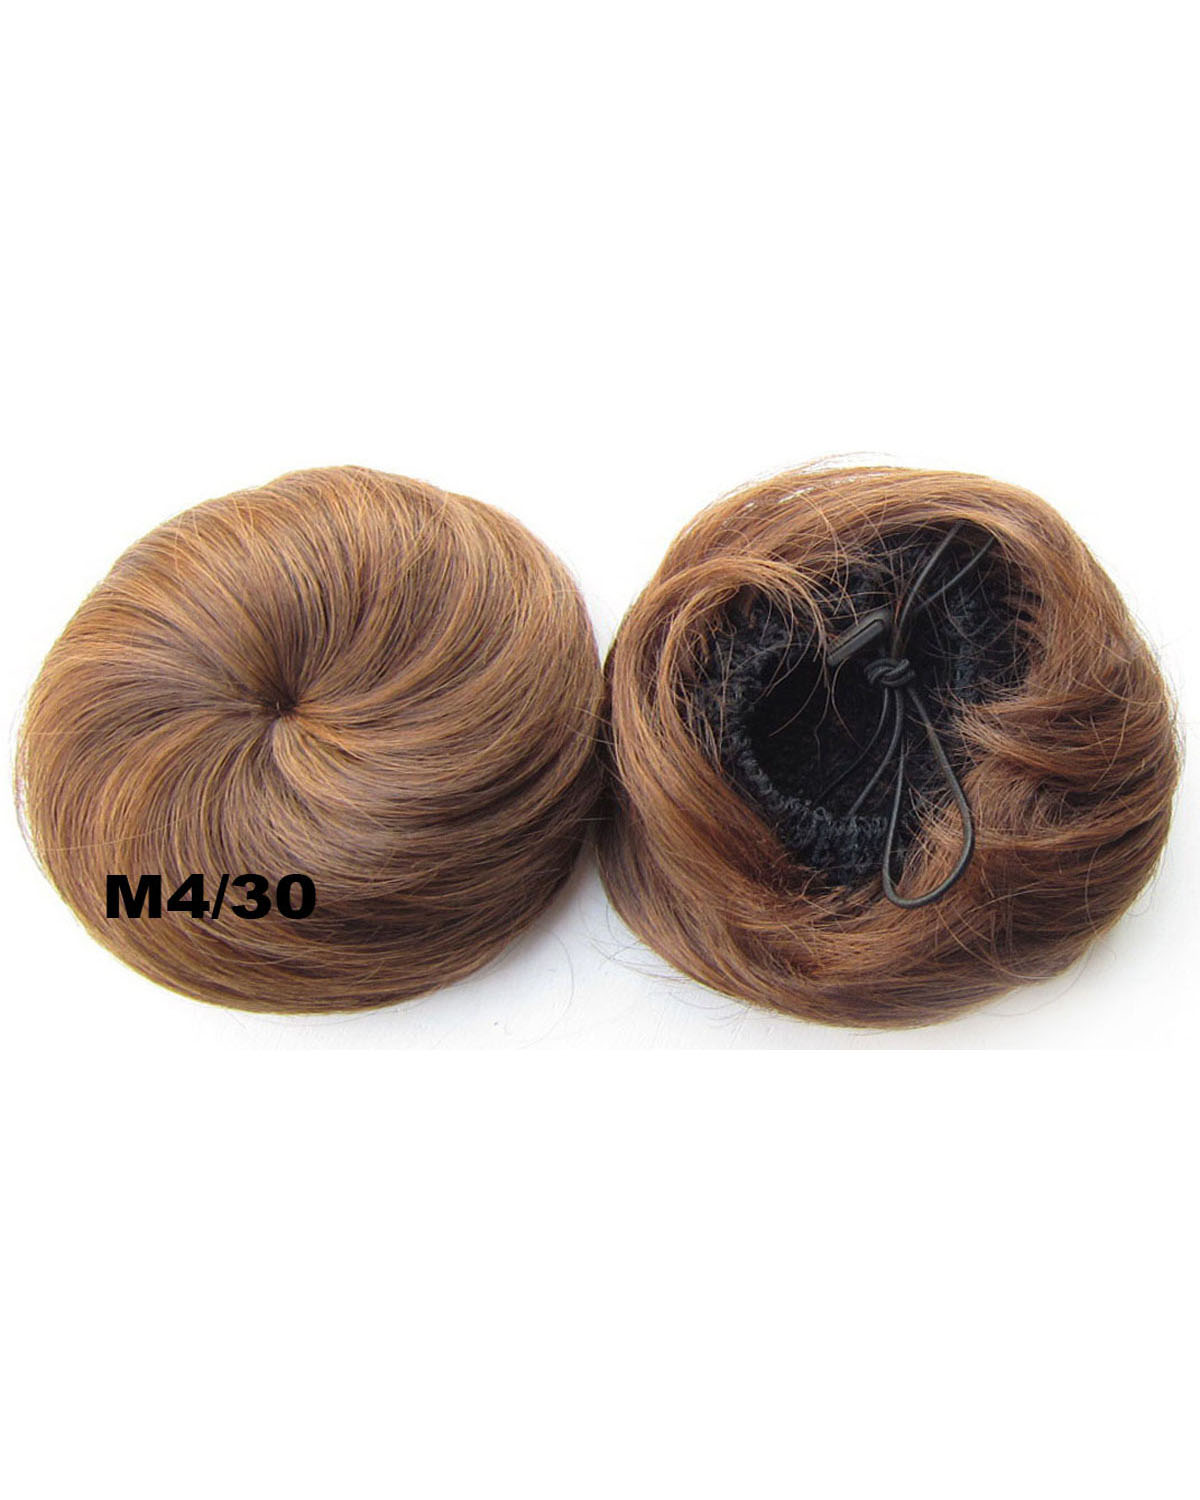 Ladies High-class Straight Short Hair Buns Drawstring Synthetic Hair Extension Bride Scrunchies M4/30